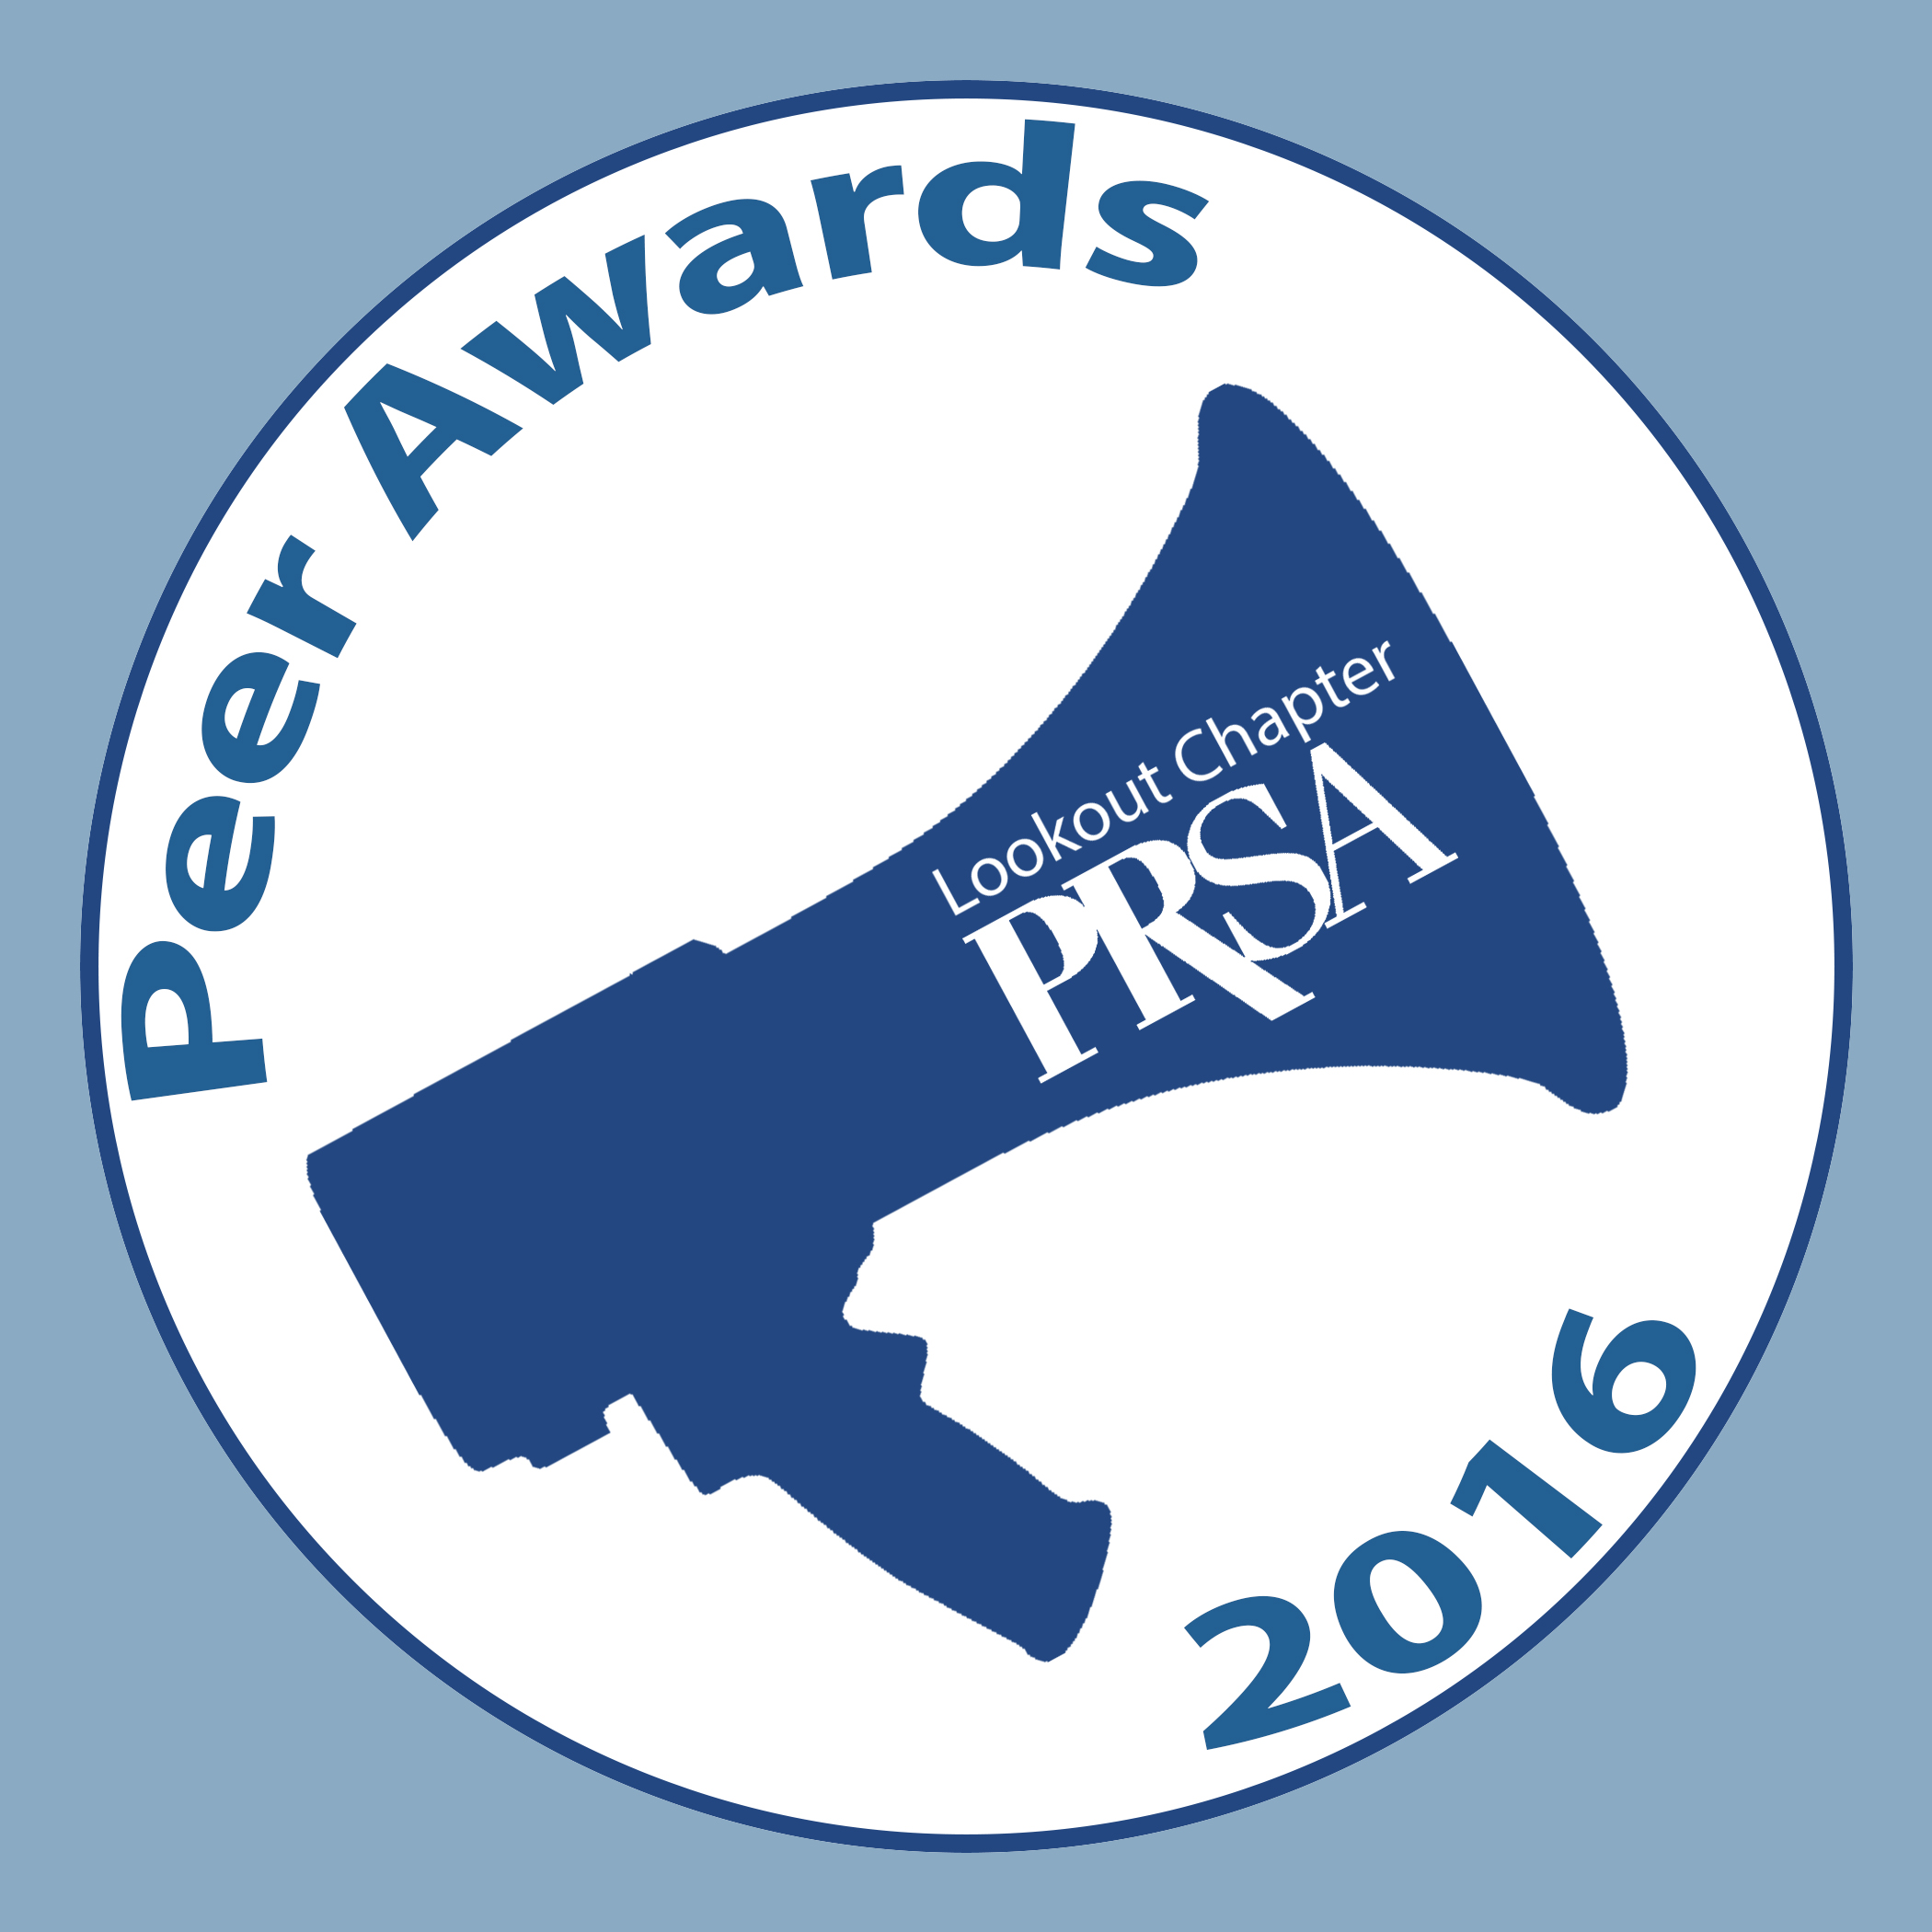 peer-awards-logo_blue-background